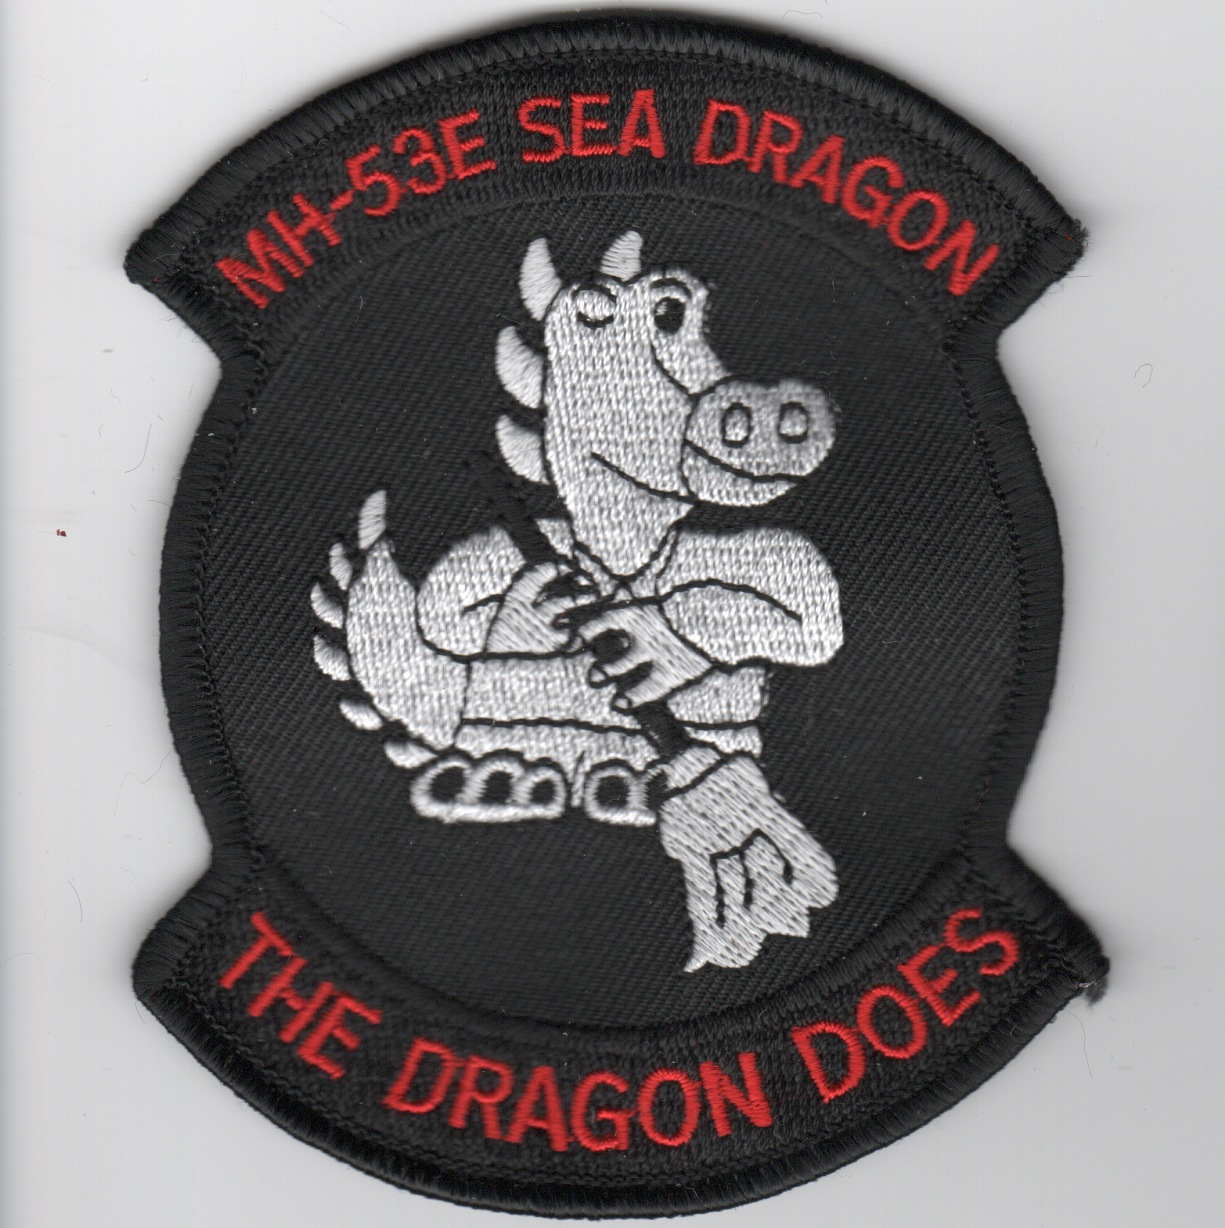 MH-53E 'The Dragon Does' (Black)